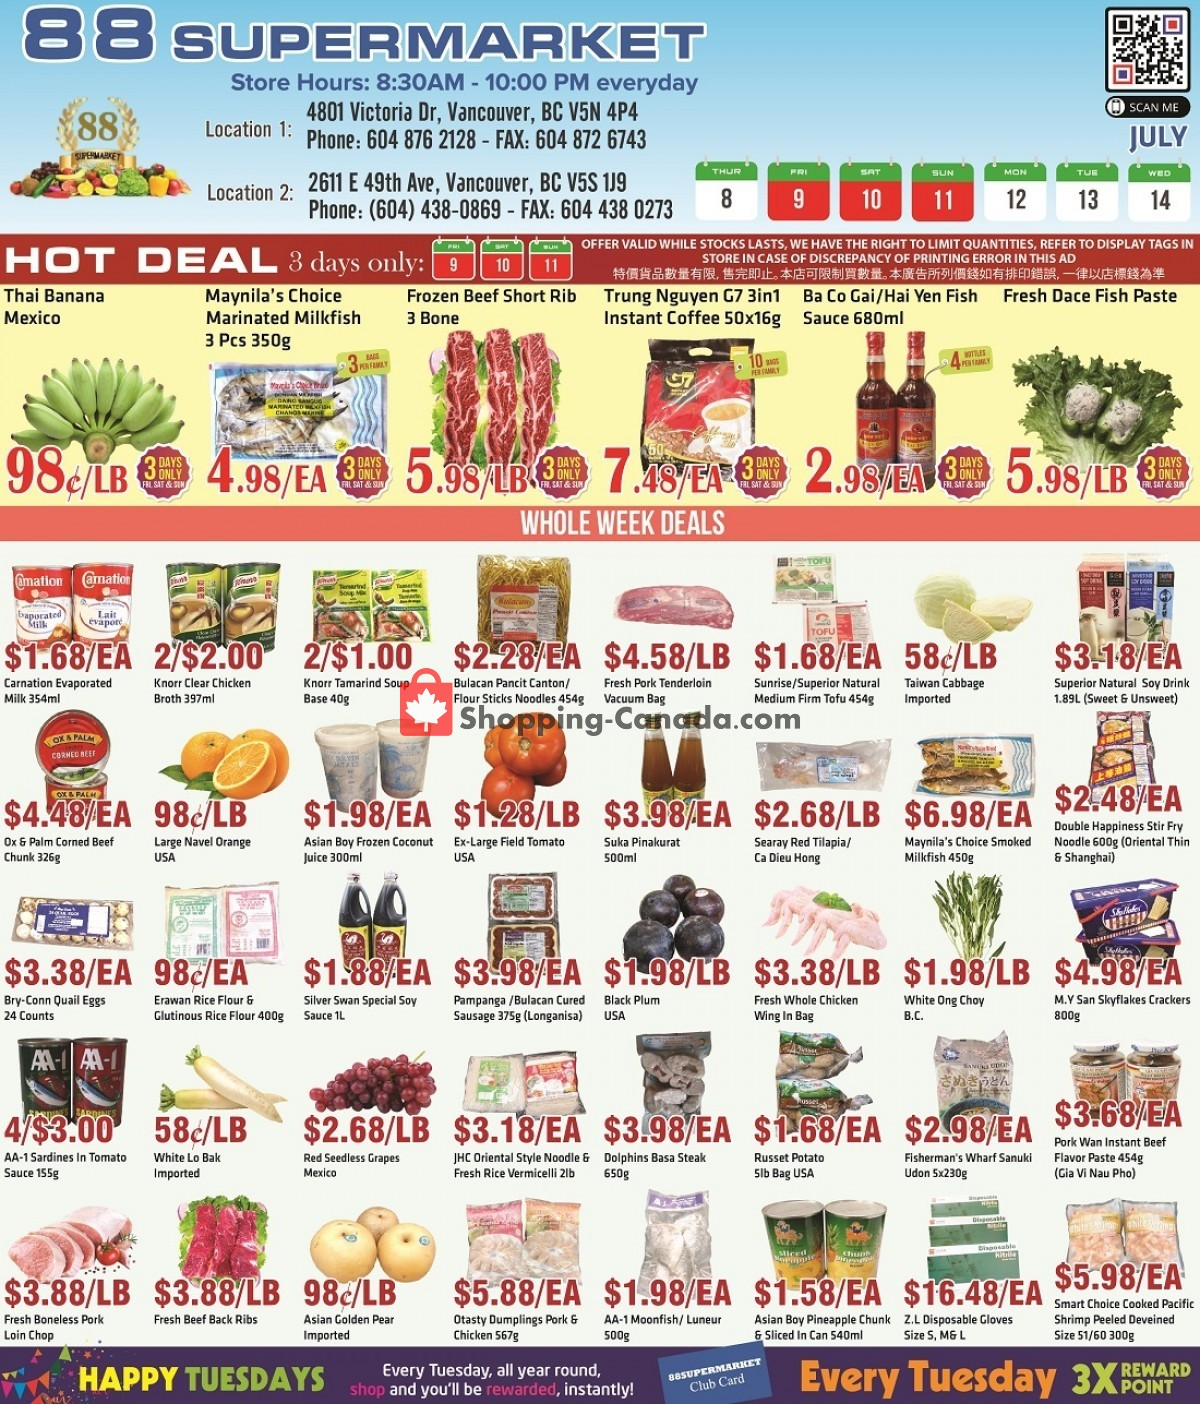 Flyer 88 Supermarket Canada - from Thursday July 8, 2021 to Wednesday July 14, 2021